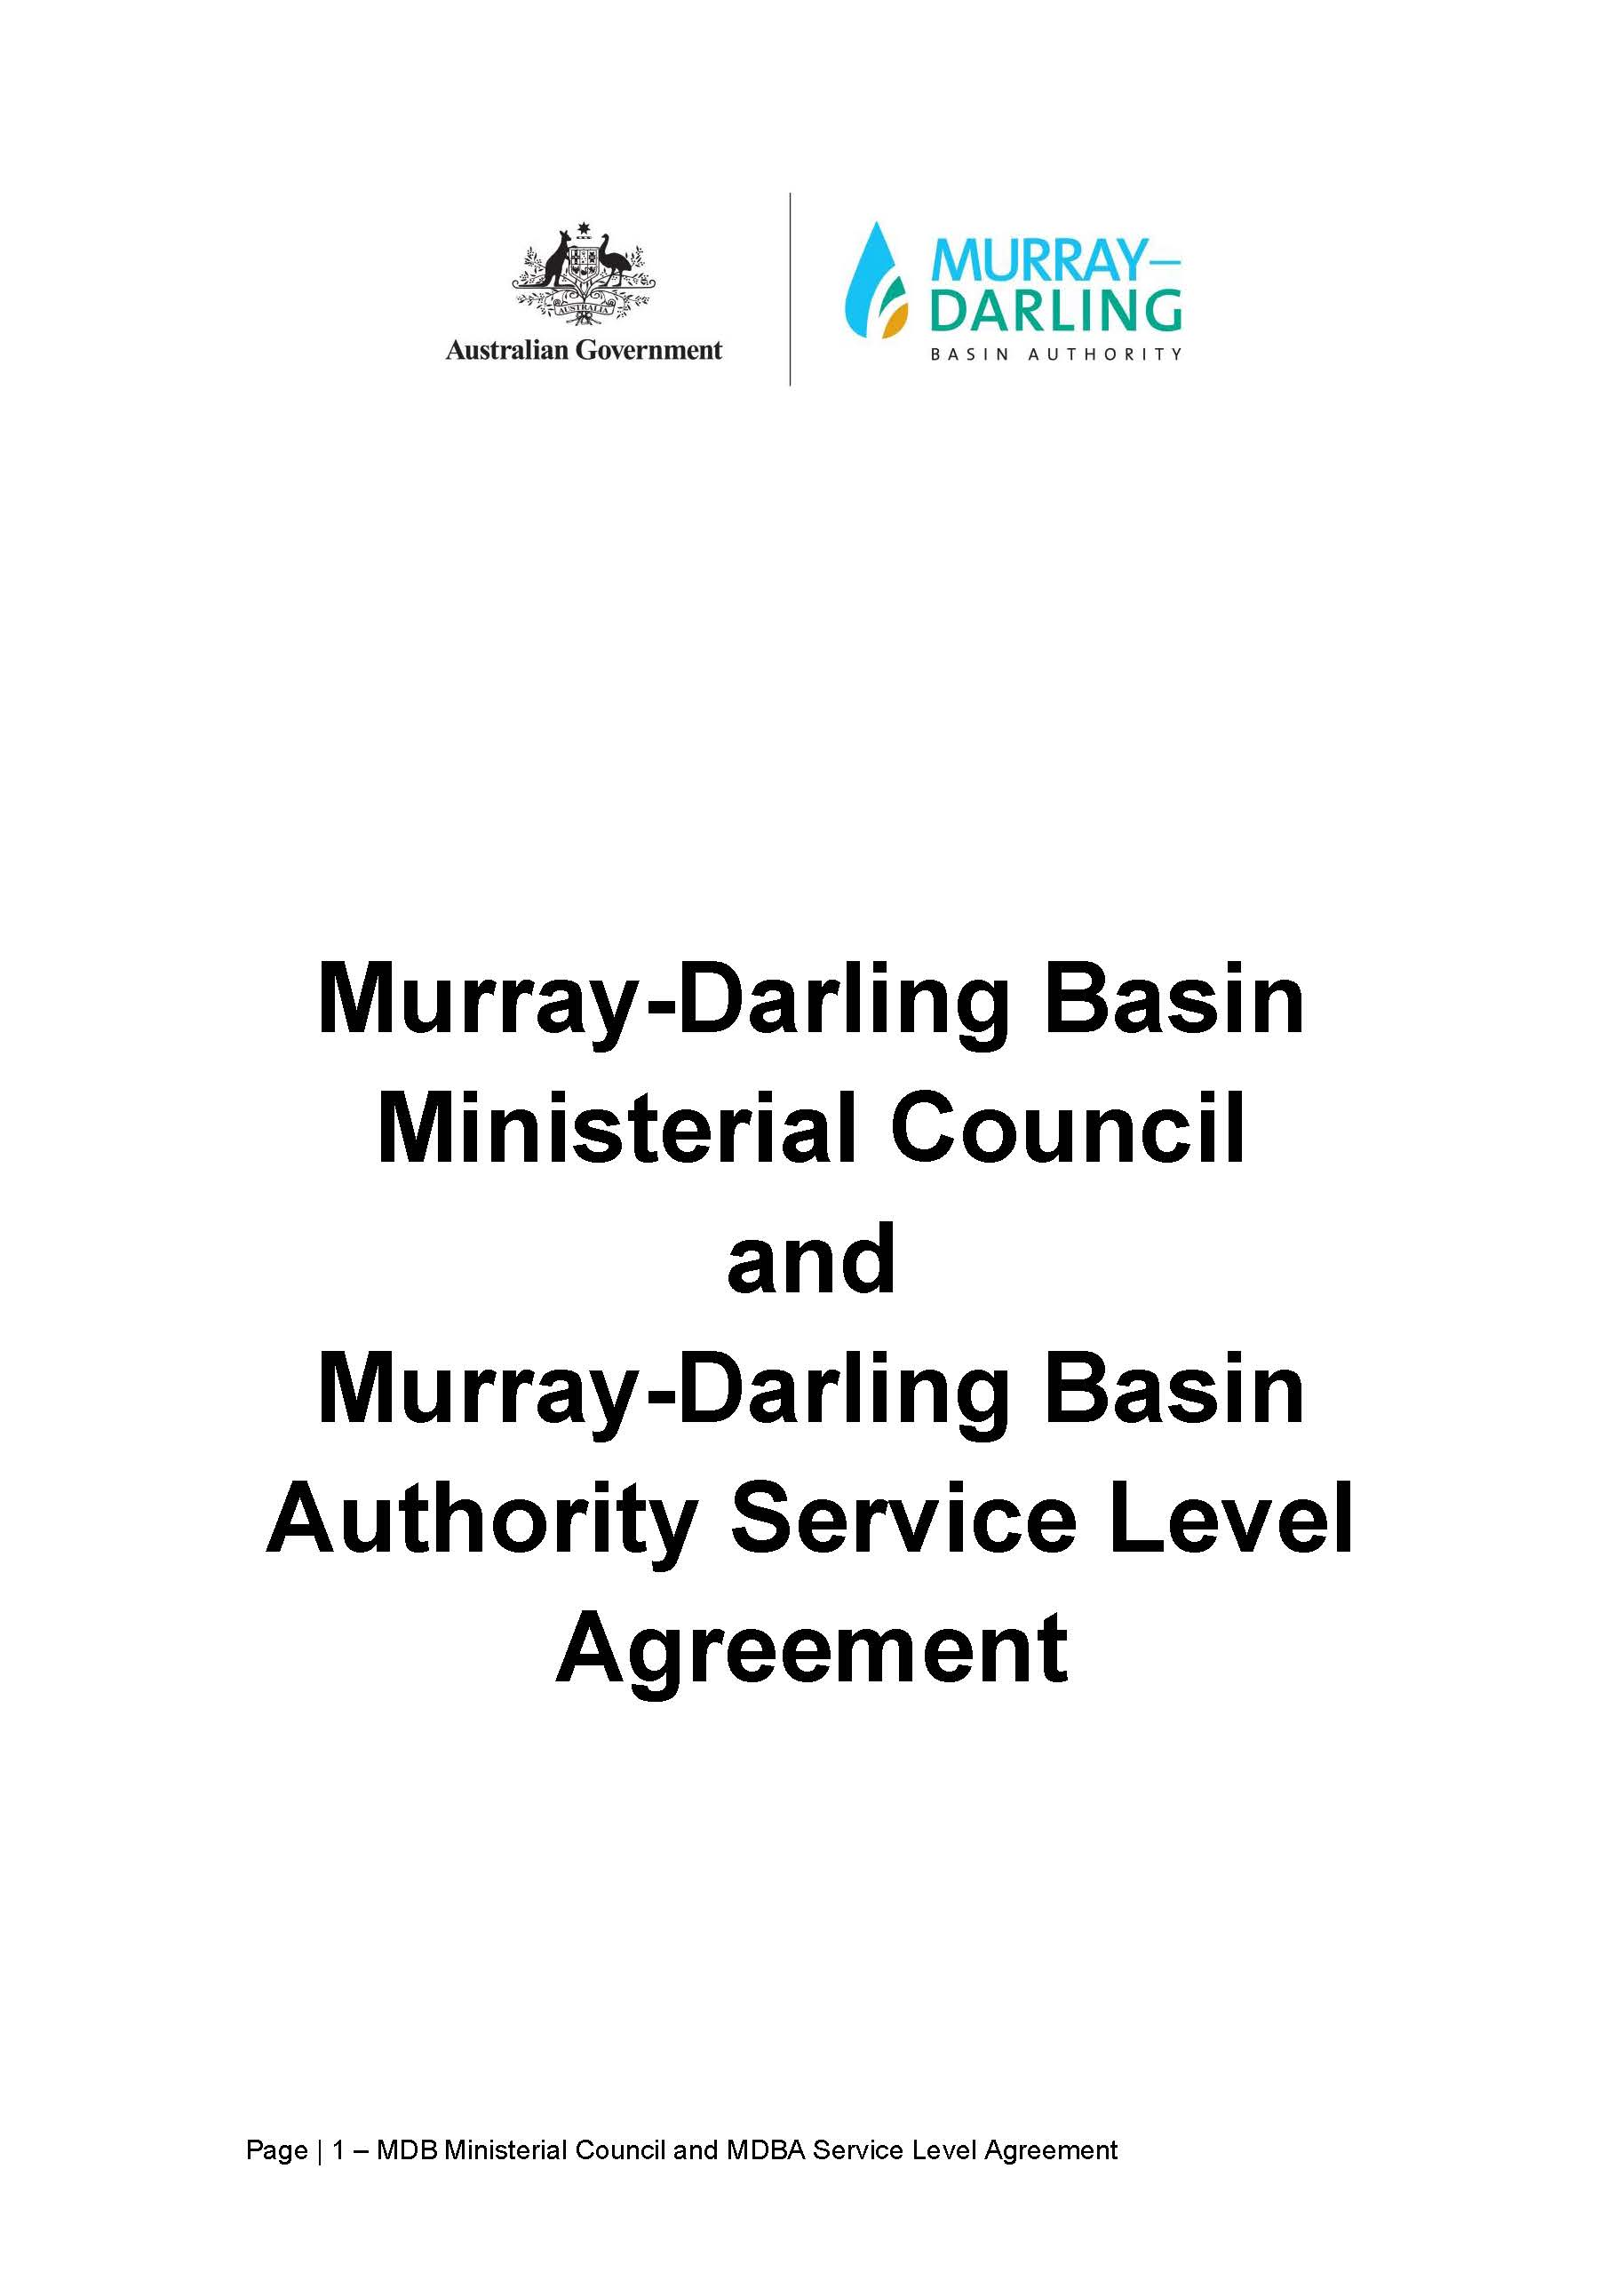 MDB Ministerial Council and MDBA Service Level Agreement